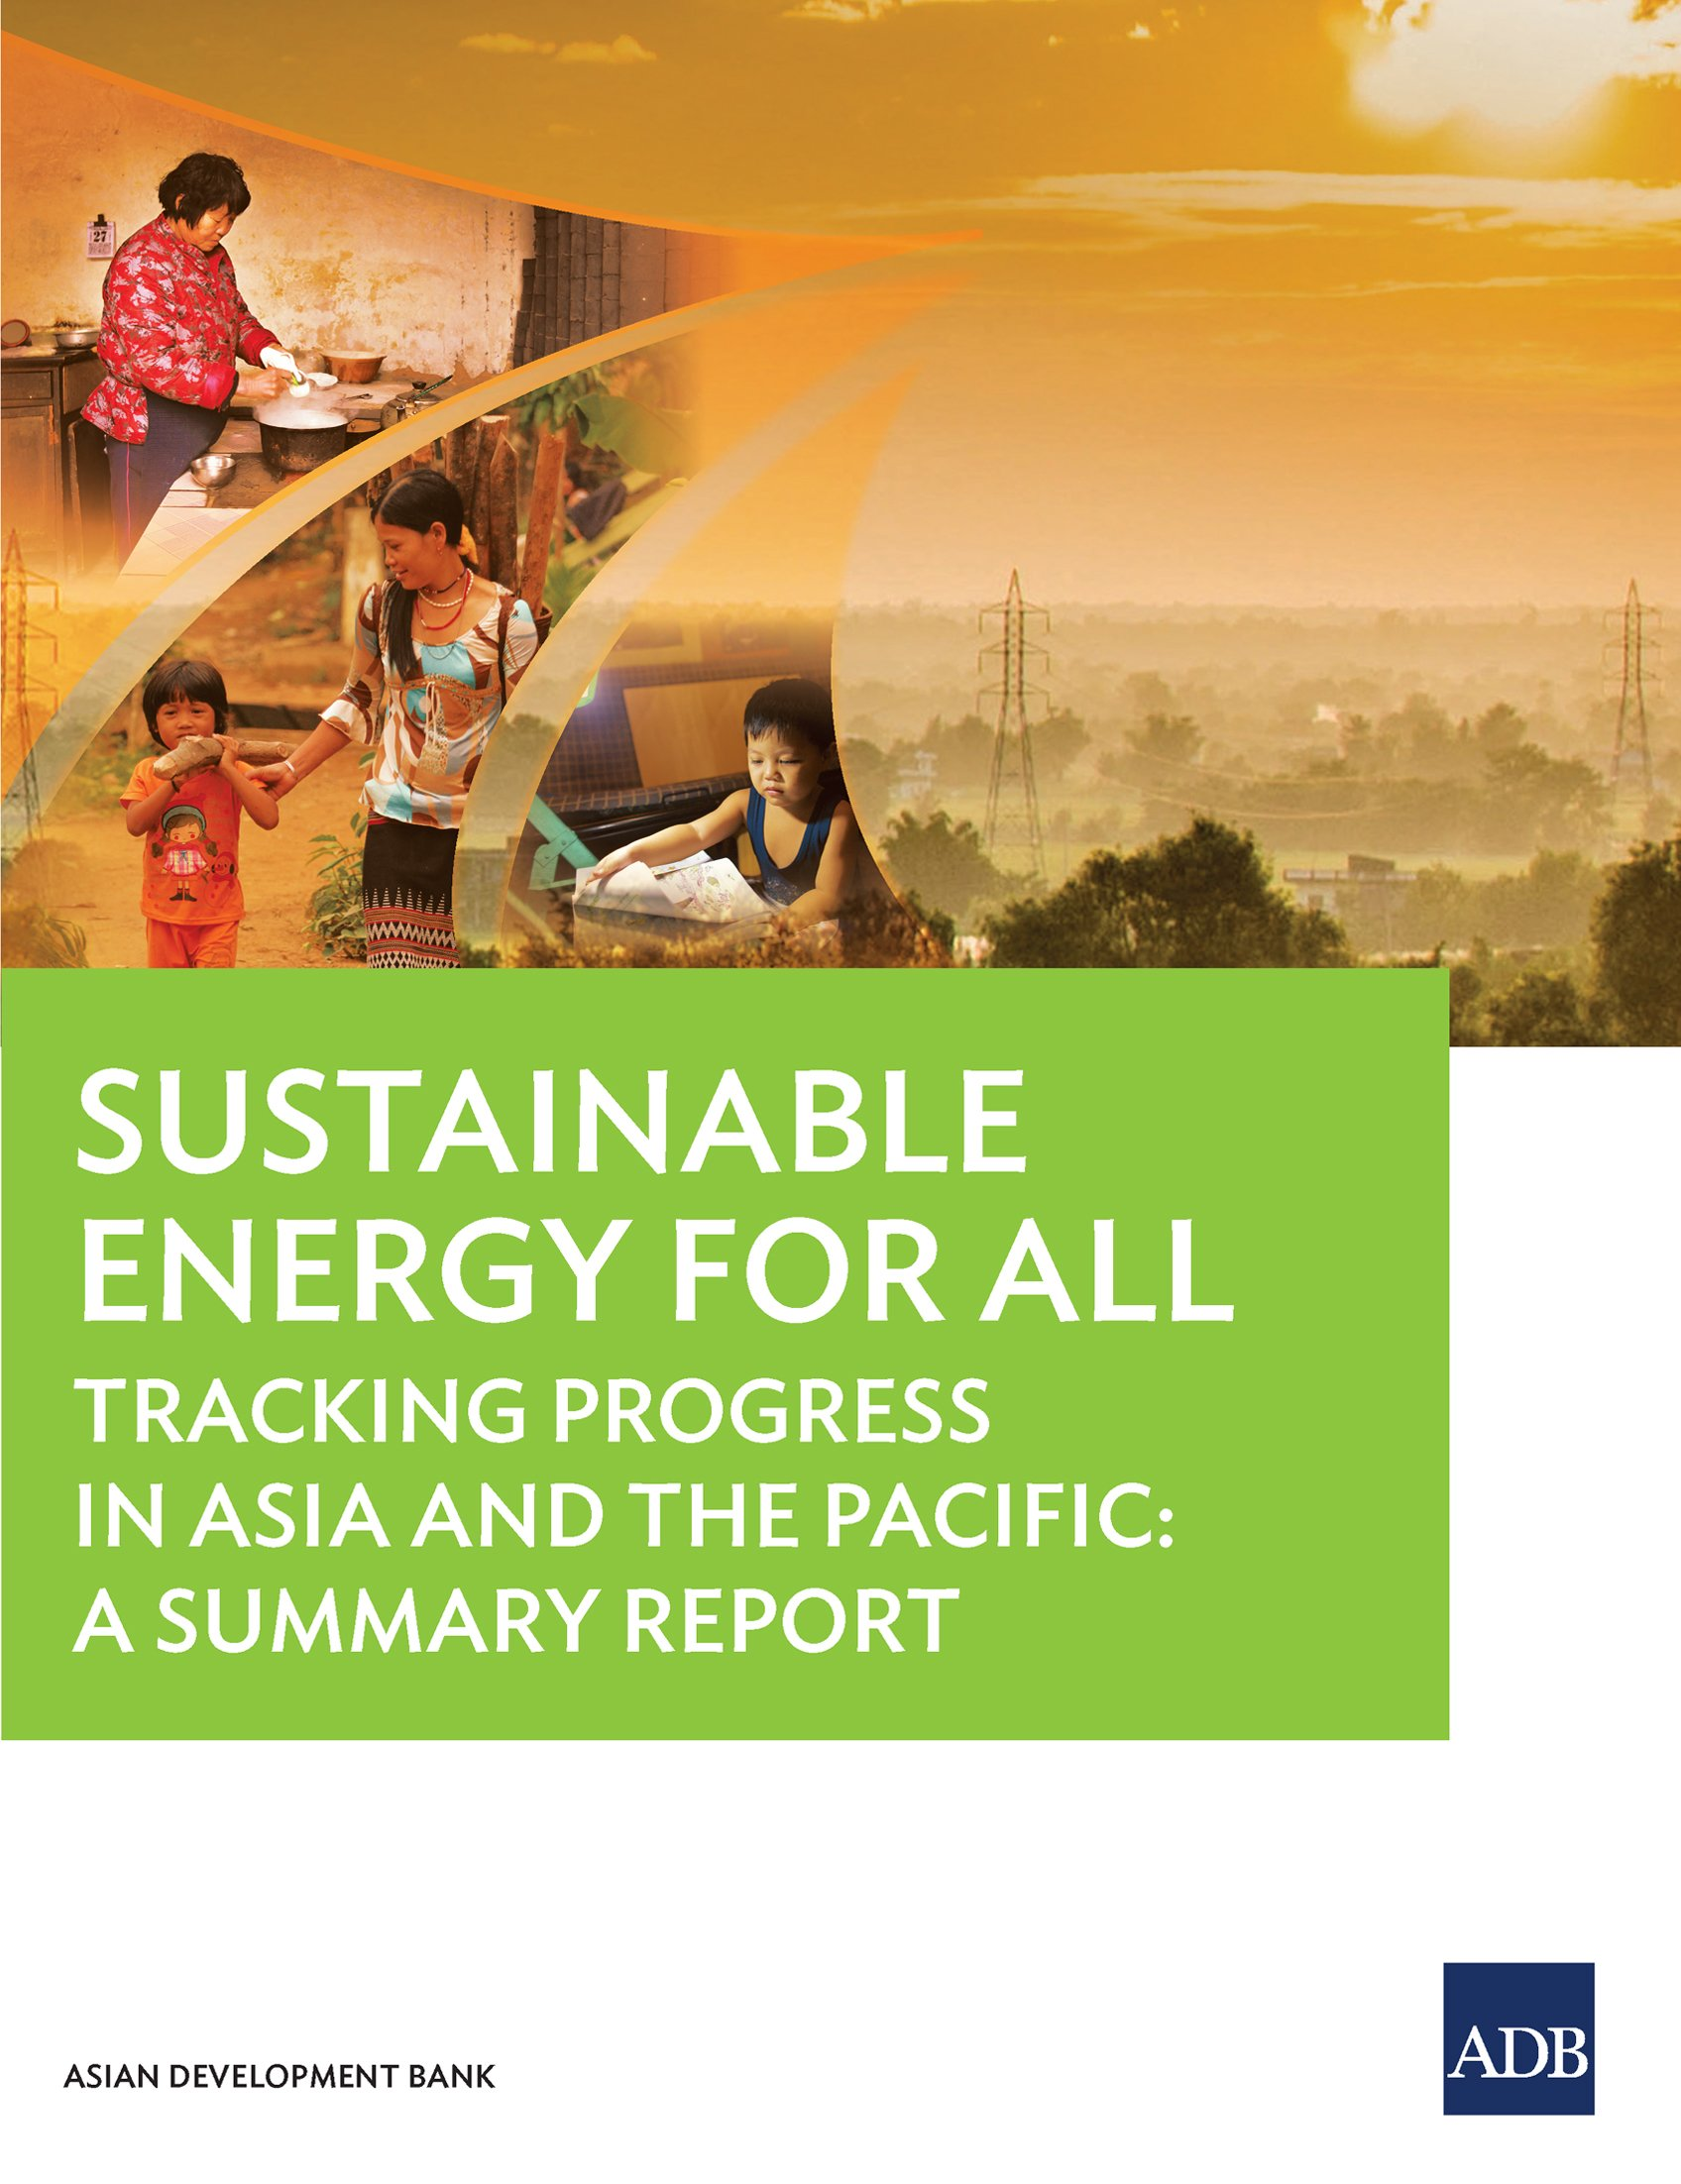 Sustainable Energy for All Status Report: Tracking Progress in the Asia and the Pacific: A Summary Report